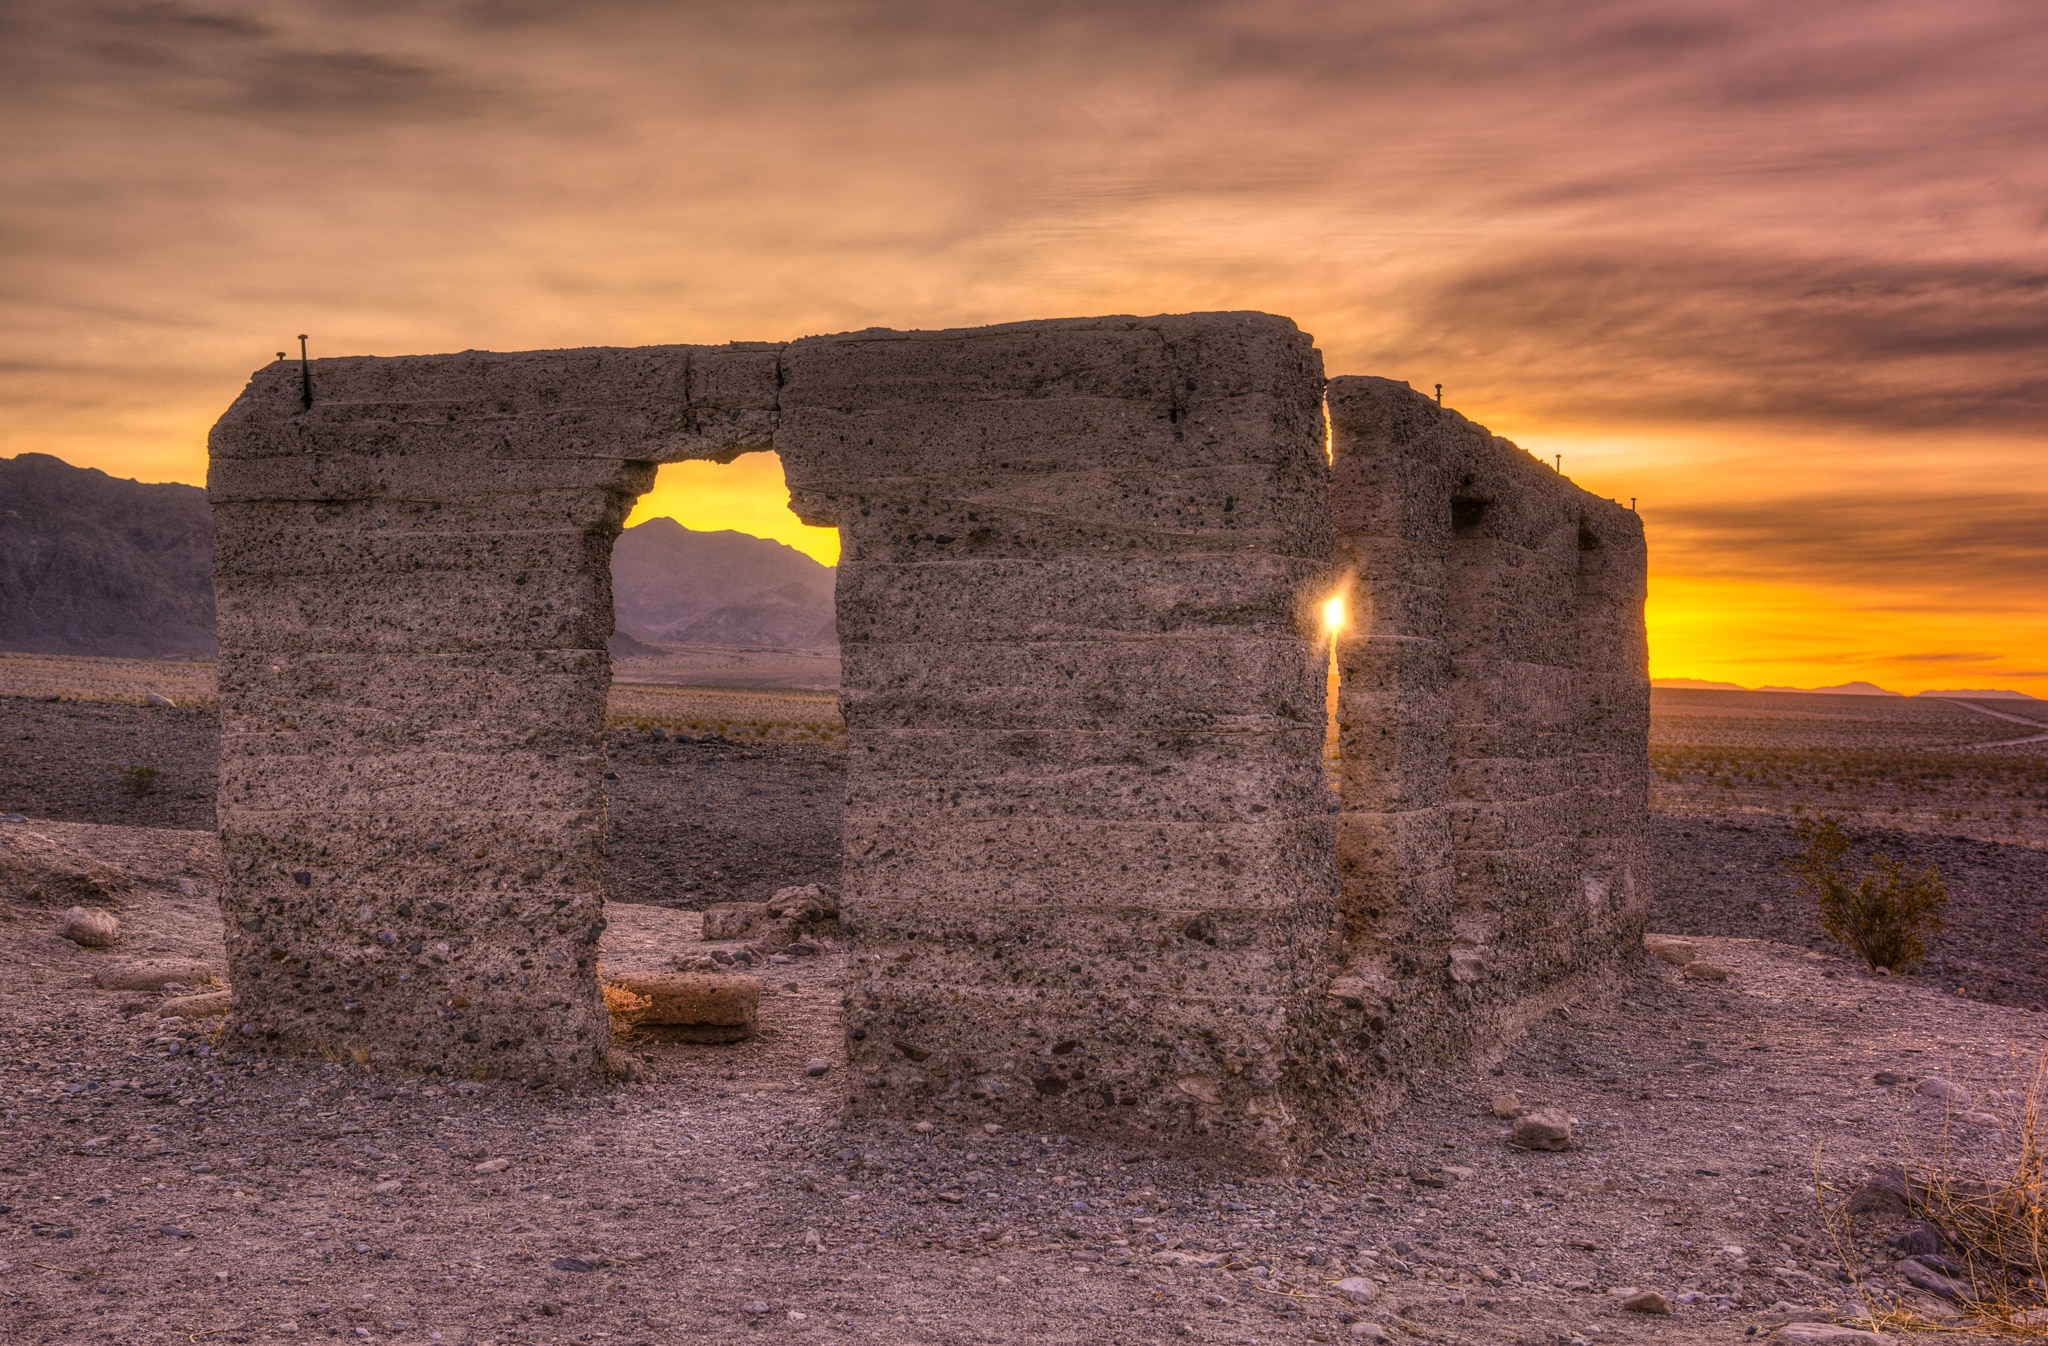 The morning sun shines through the last reamining walls of the Ashford Mill ruins, located just off Badwater Road in Death Valley National Park.